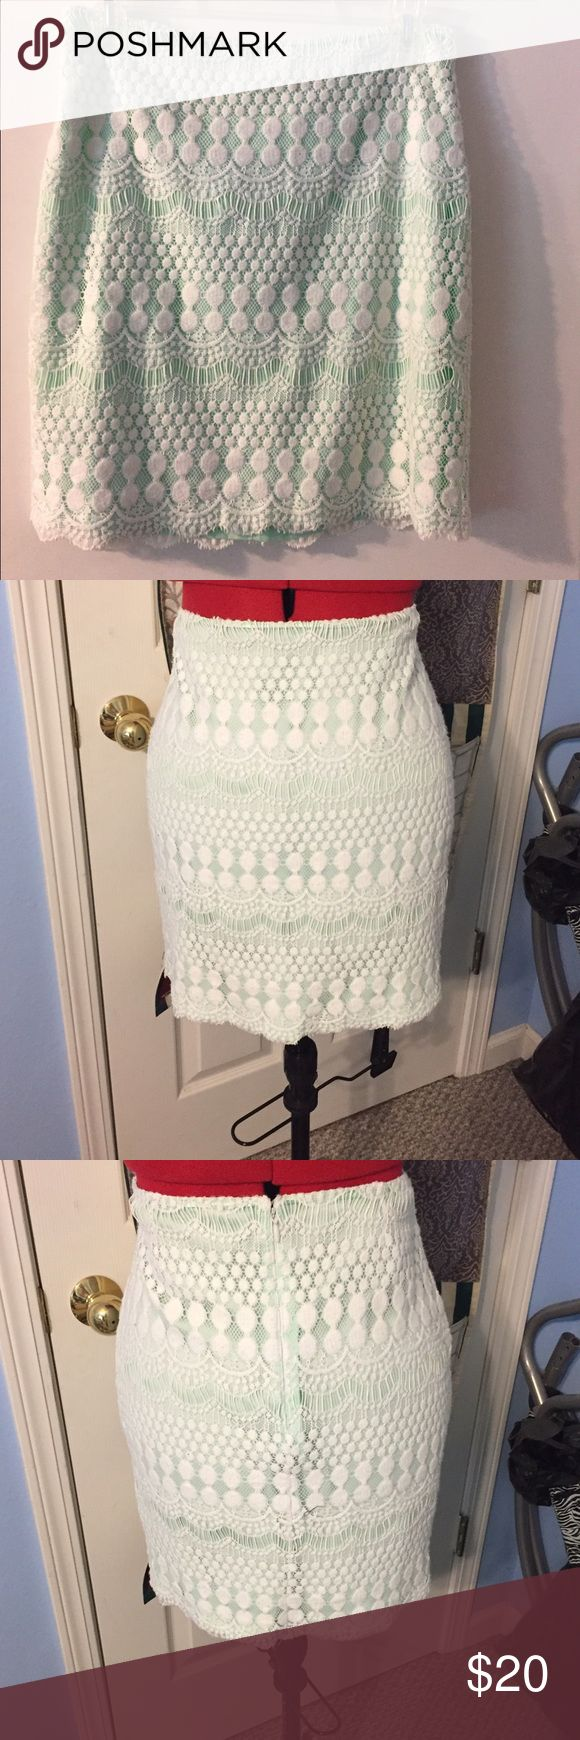 Gianni Bini mint with white lace over lay skirt This is a mint green skirt with a white lace over lay mid thigh length Gianni Bini Skirts Midi